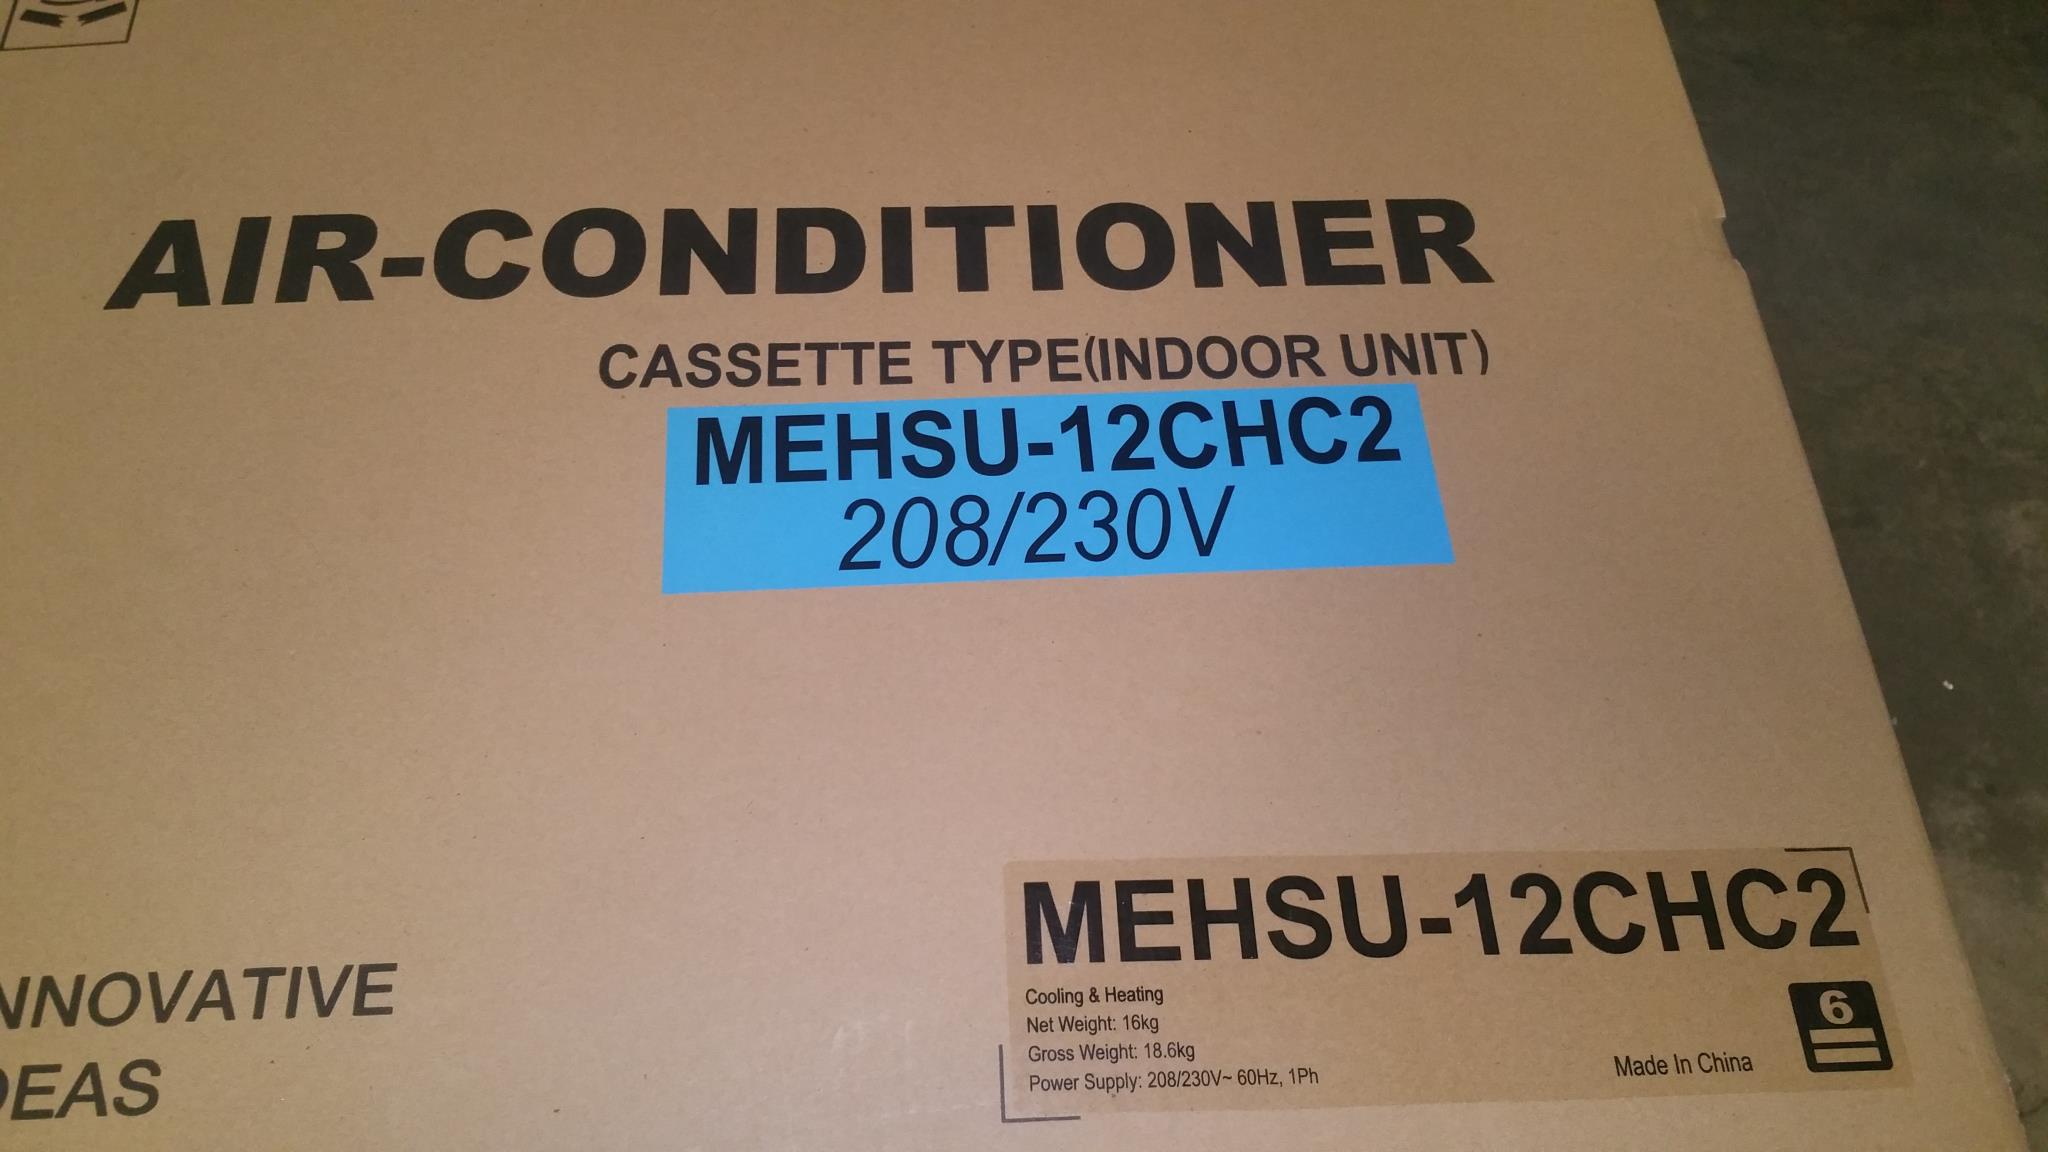 Cassette Panel Installation For Chc Cassettes Midea Air Conditioner Wiring Diagram